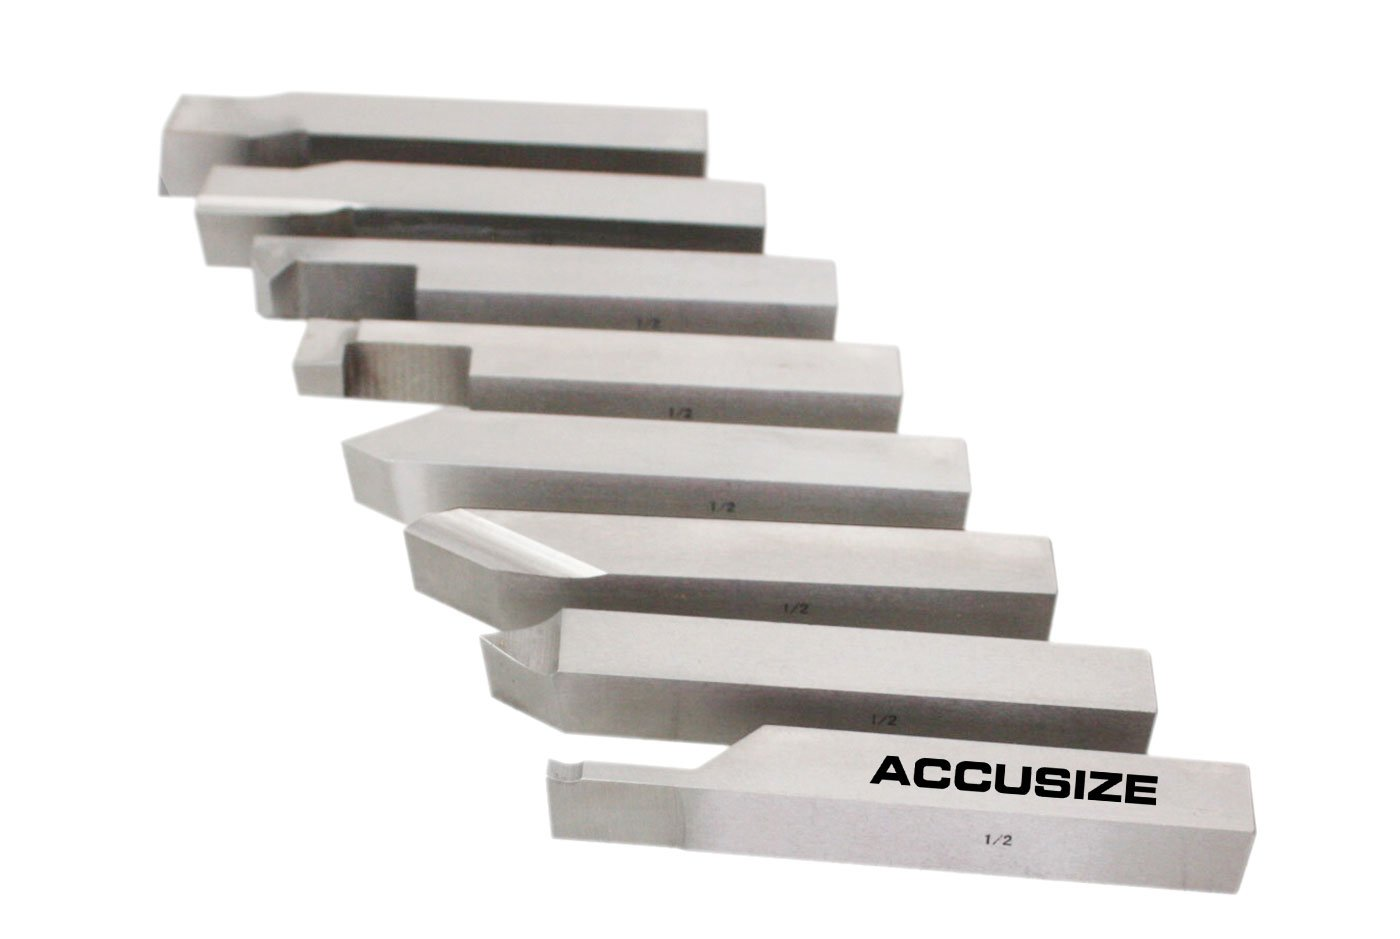 AccusizeTools - 1/2 inch 8 pcs H.S.S. Tool Bit Set, Pre-Ground for Turning & Facing Work, for Aluminum.Steel, Brass, Plastic & Wood, 2662-2004 by Accusize Industrial Tools (Image #4)